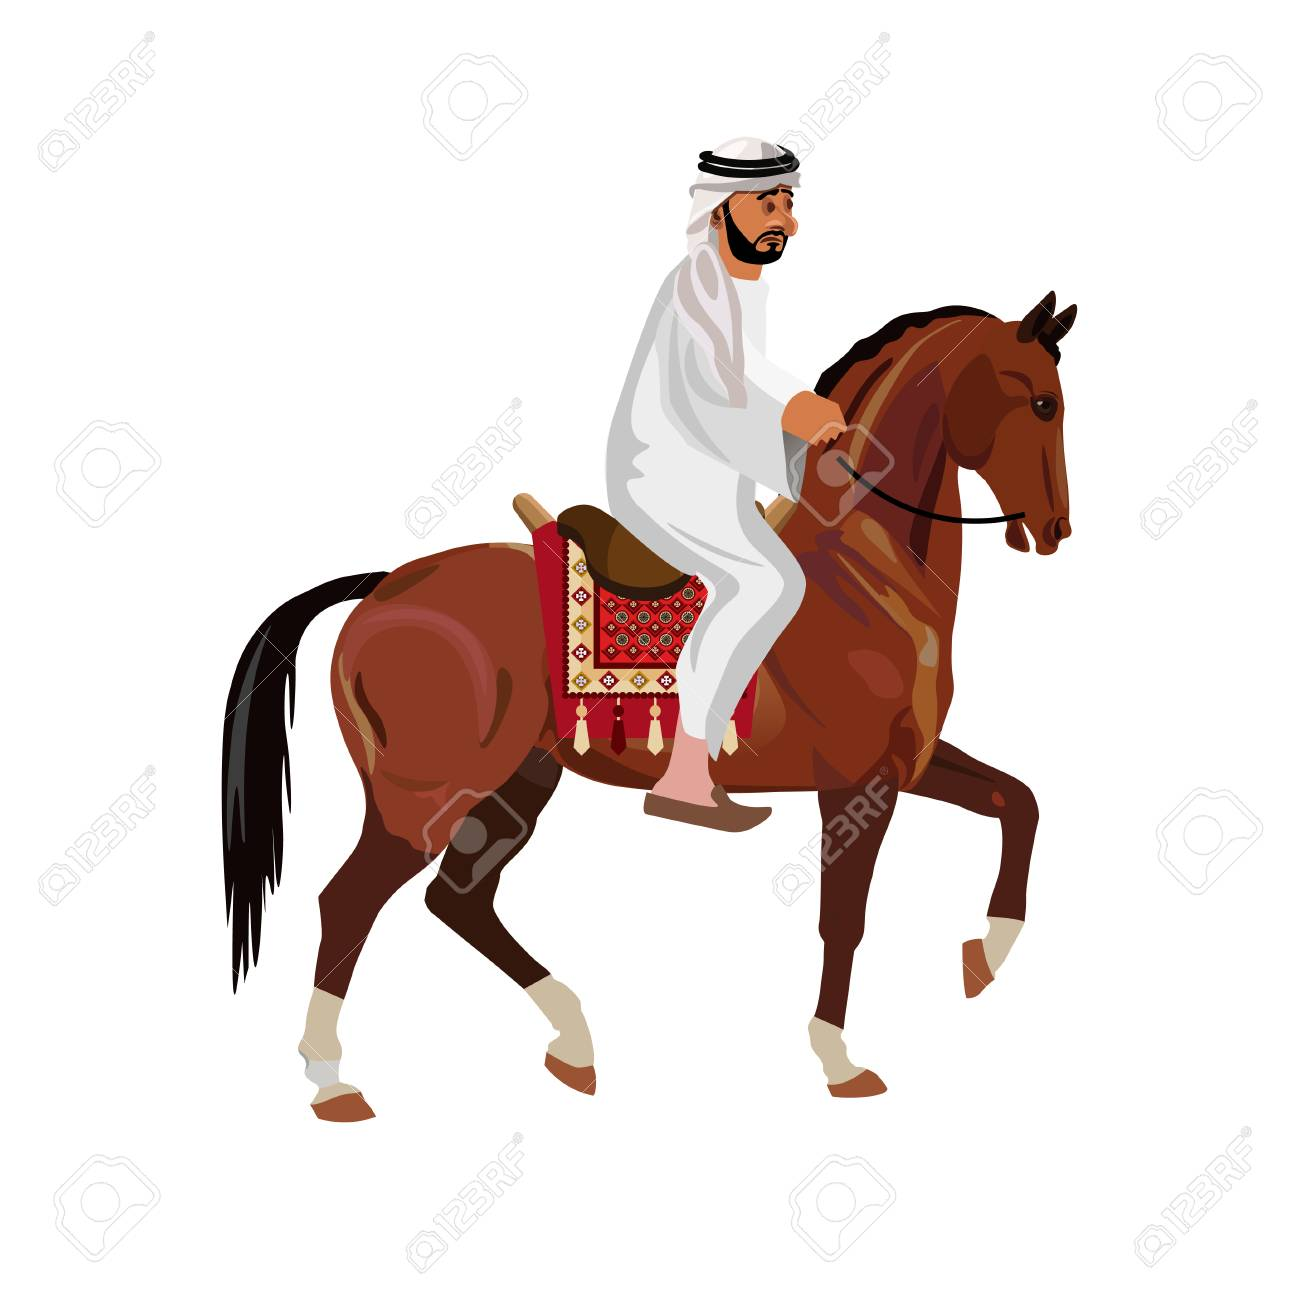 Arab Man In Traditional Clothing Riding His Horse Vector Illustration Royalty Free Cliparts Vectors And Stock Illustration Image 100938007